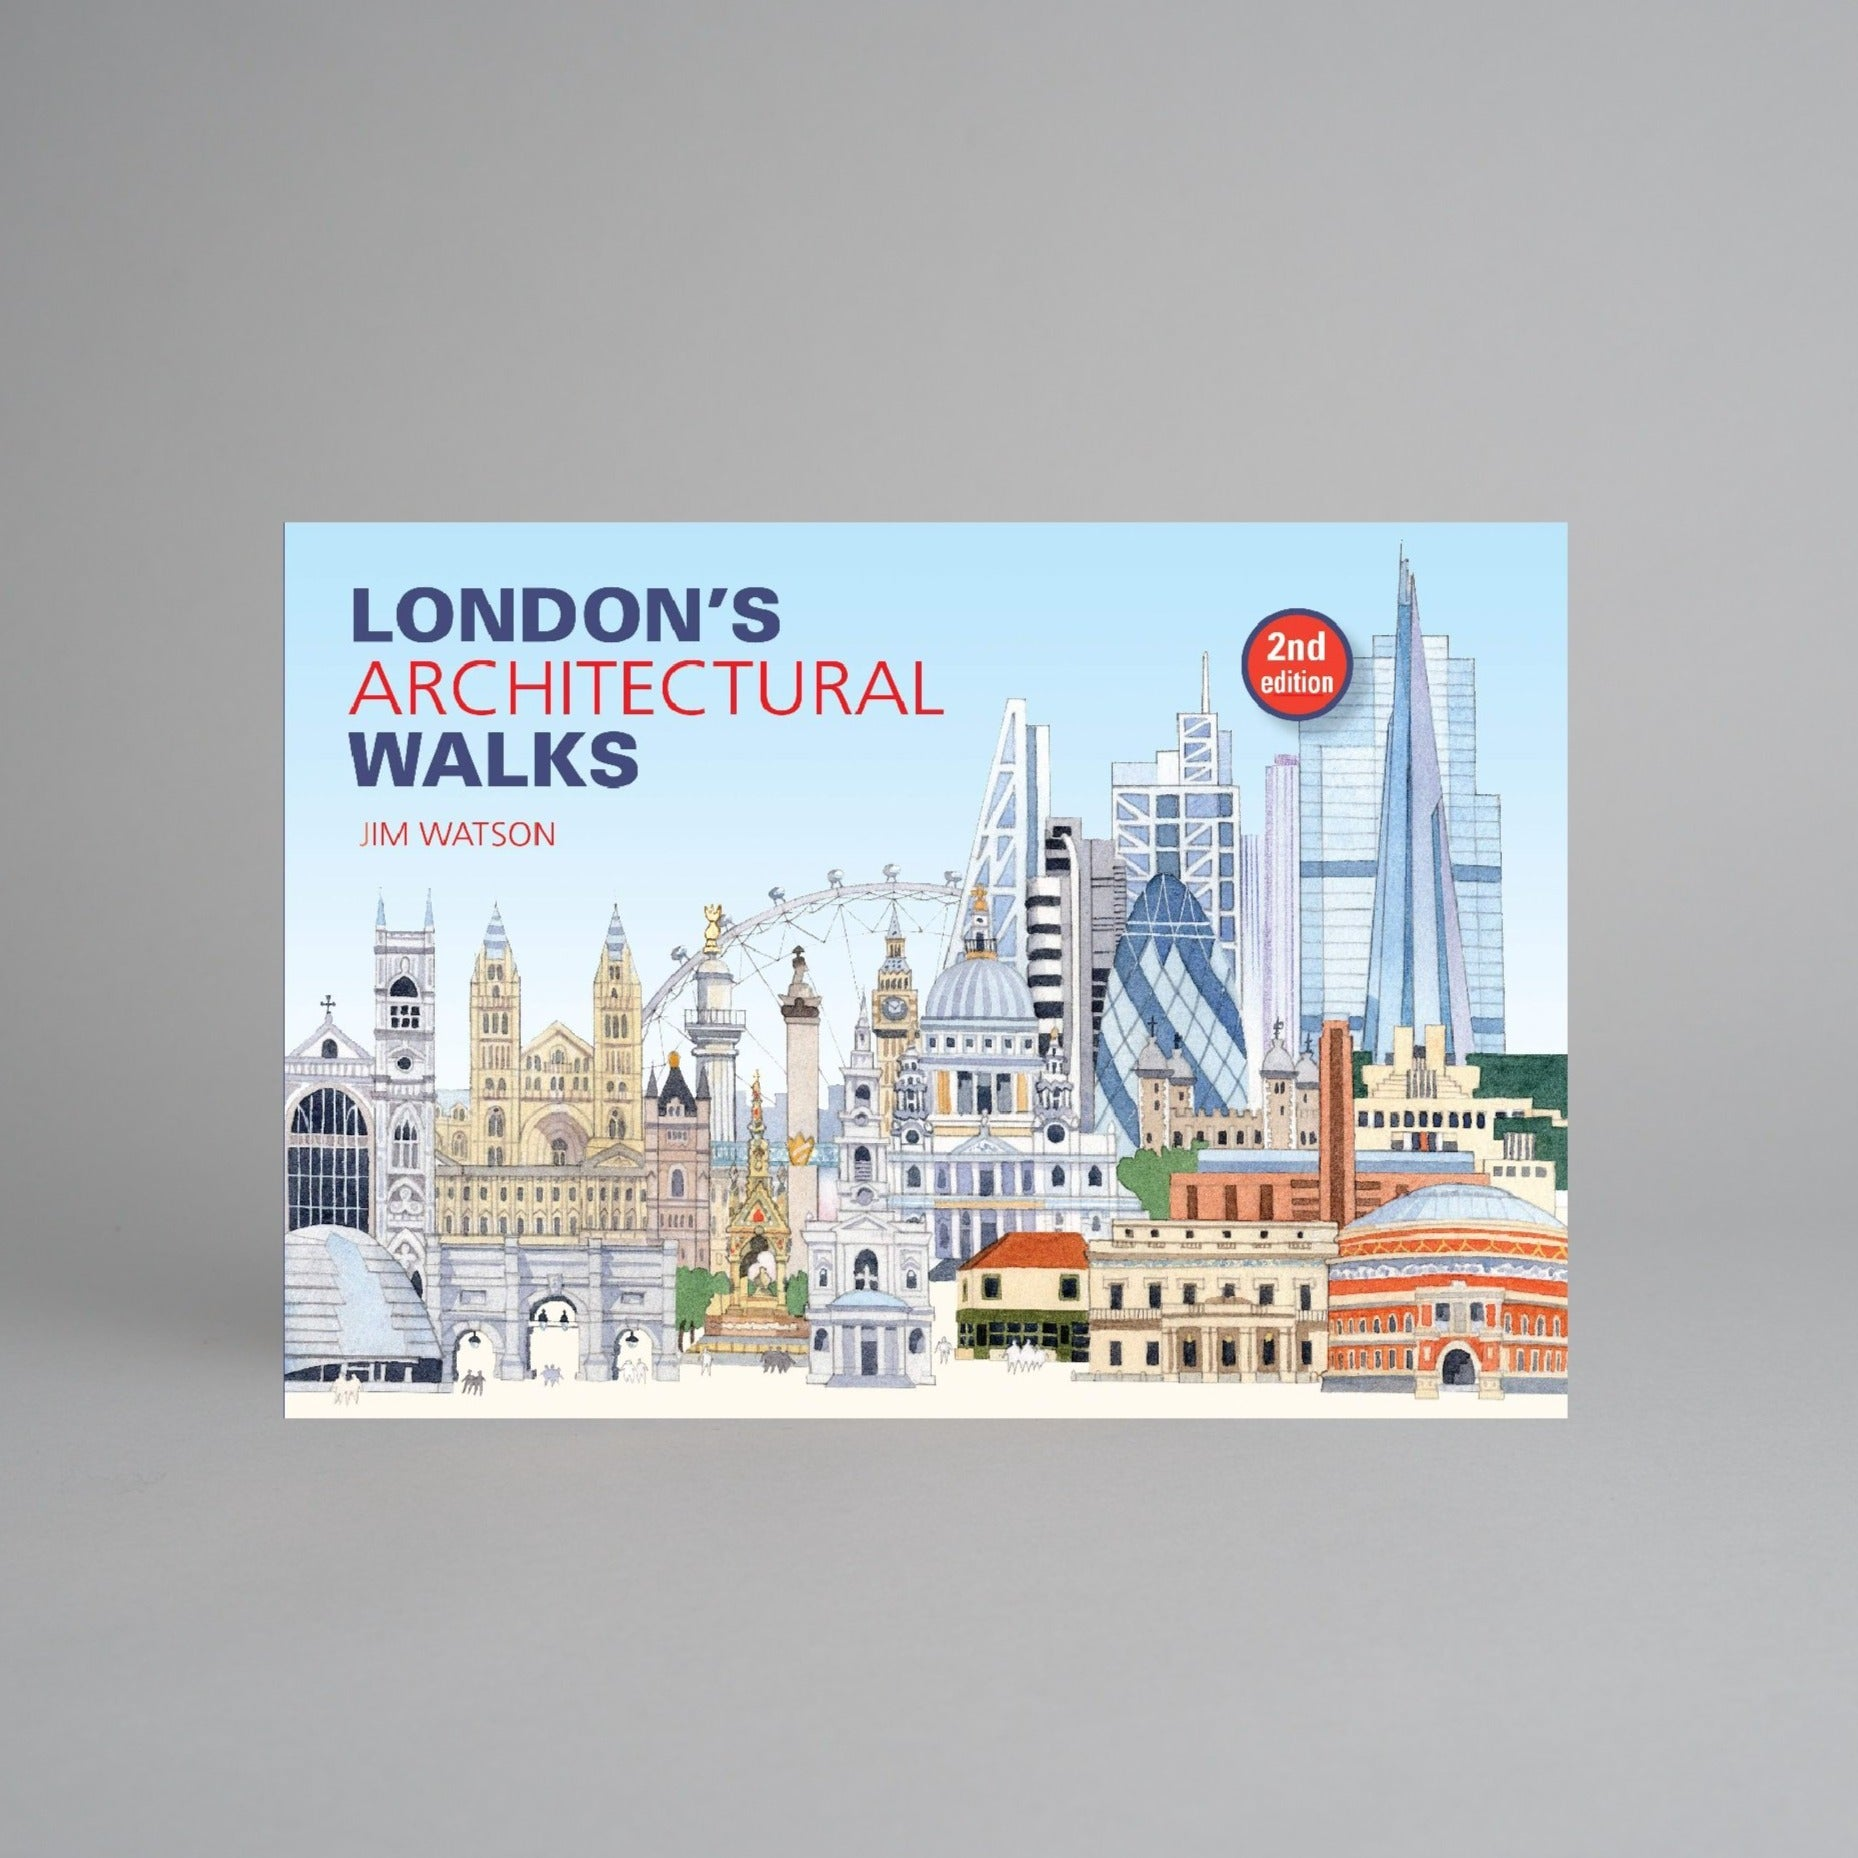 London's Architectural Walks by Jim Watson